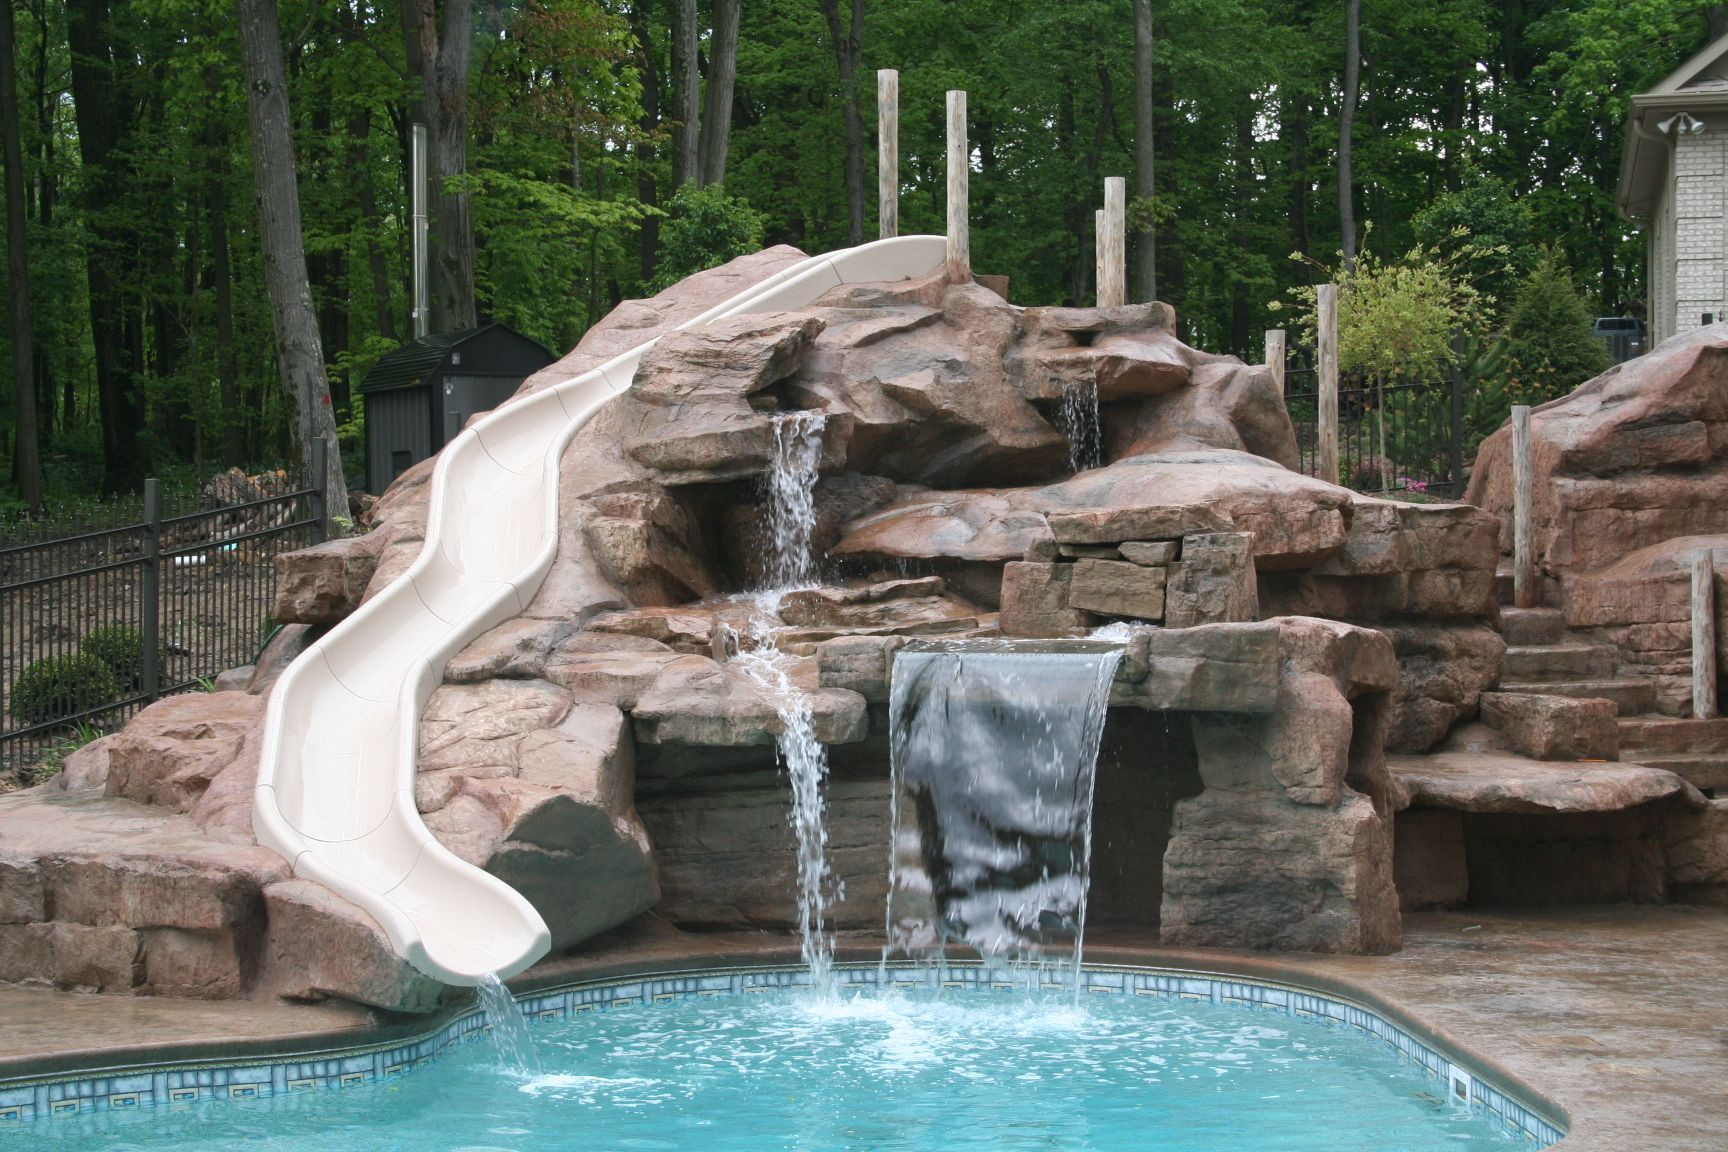 Cool Pools With Waterfalls And Slides i will someday have a fancy pool, and i want a waterfall and a